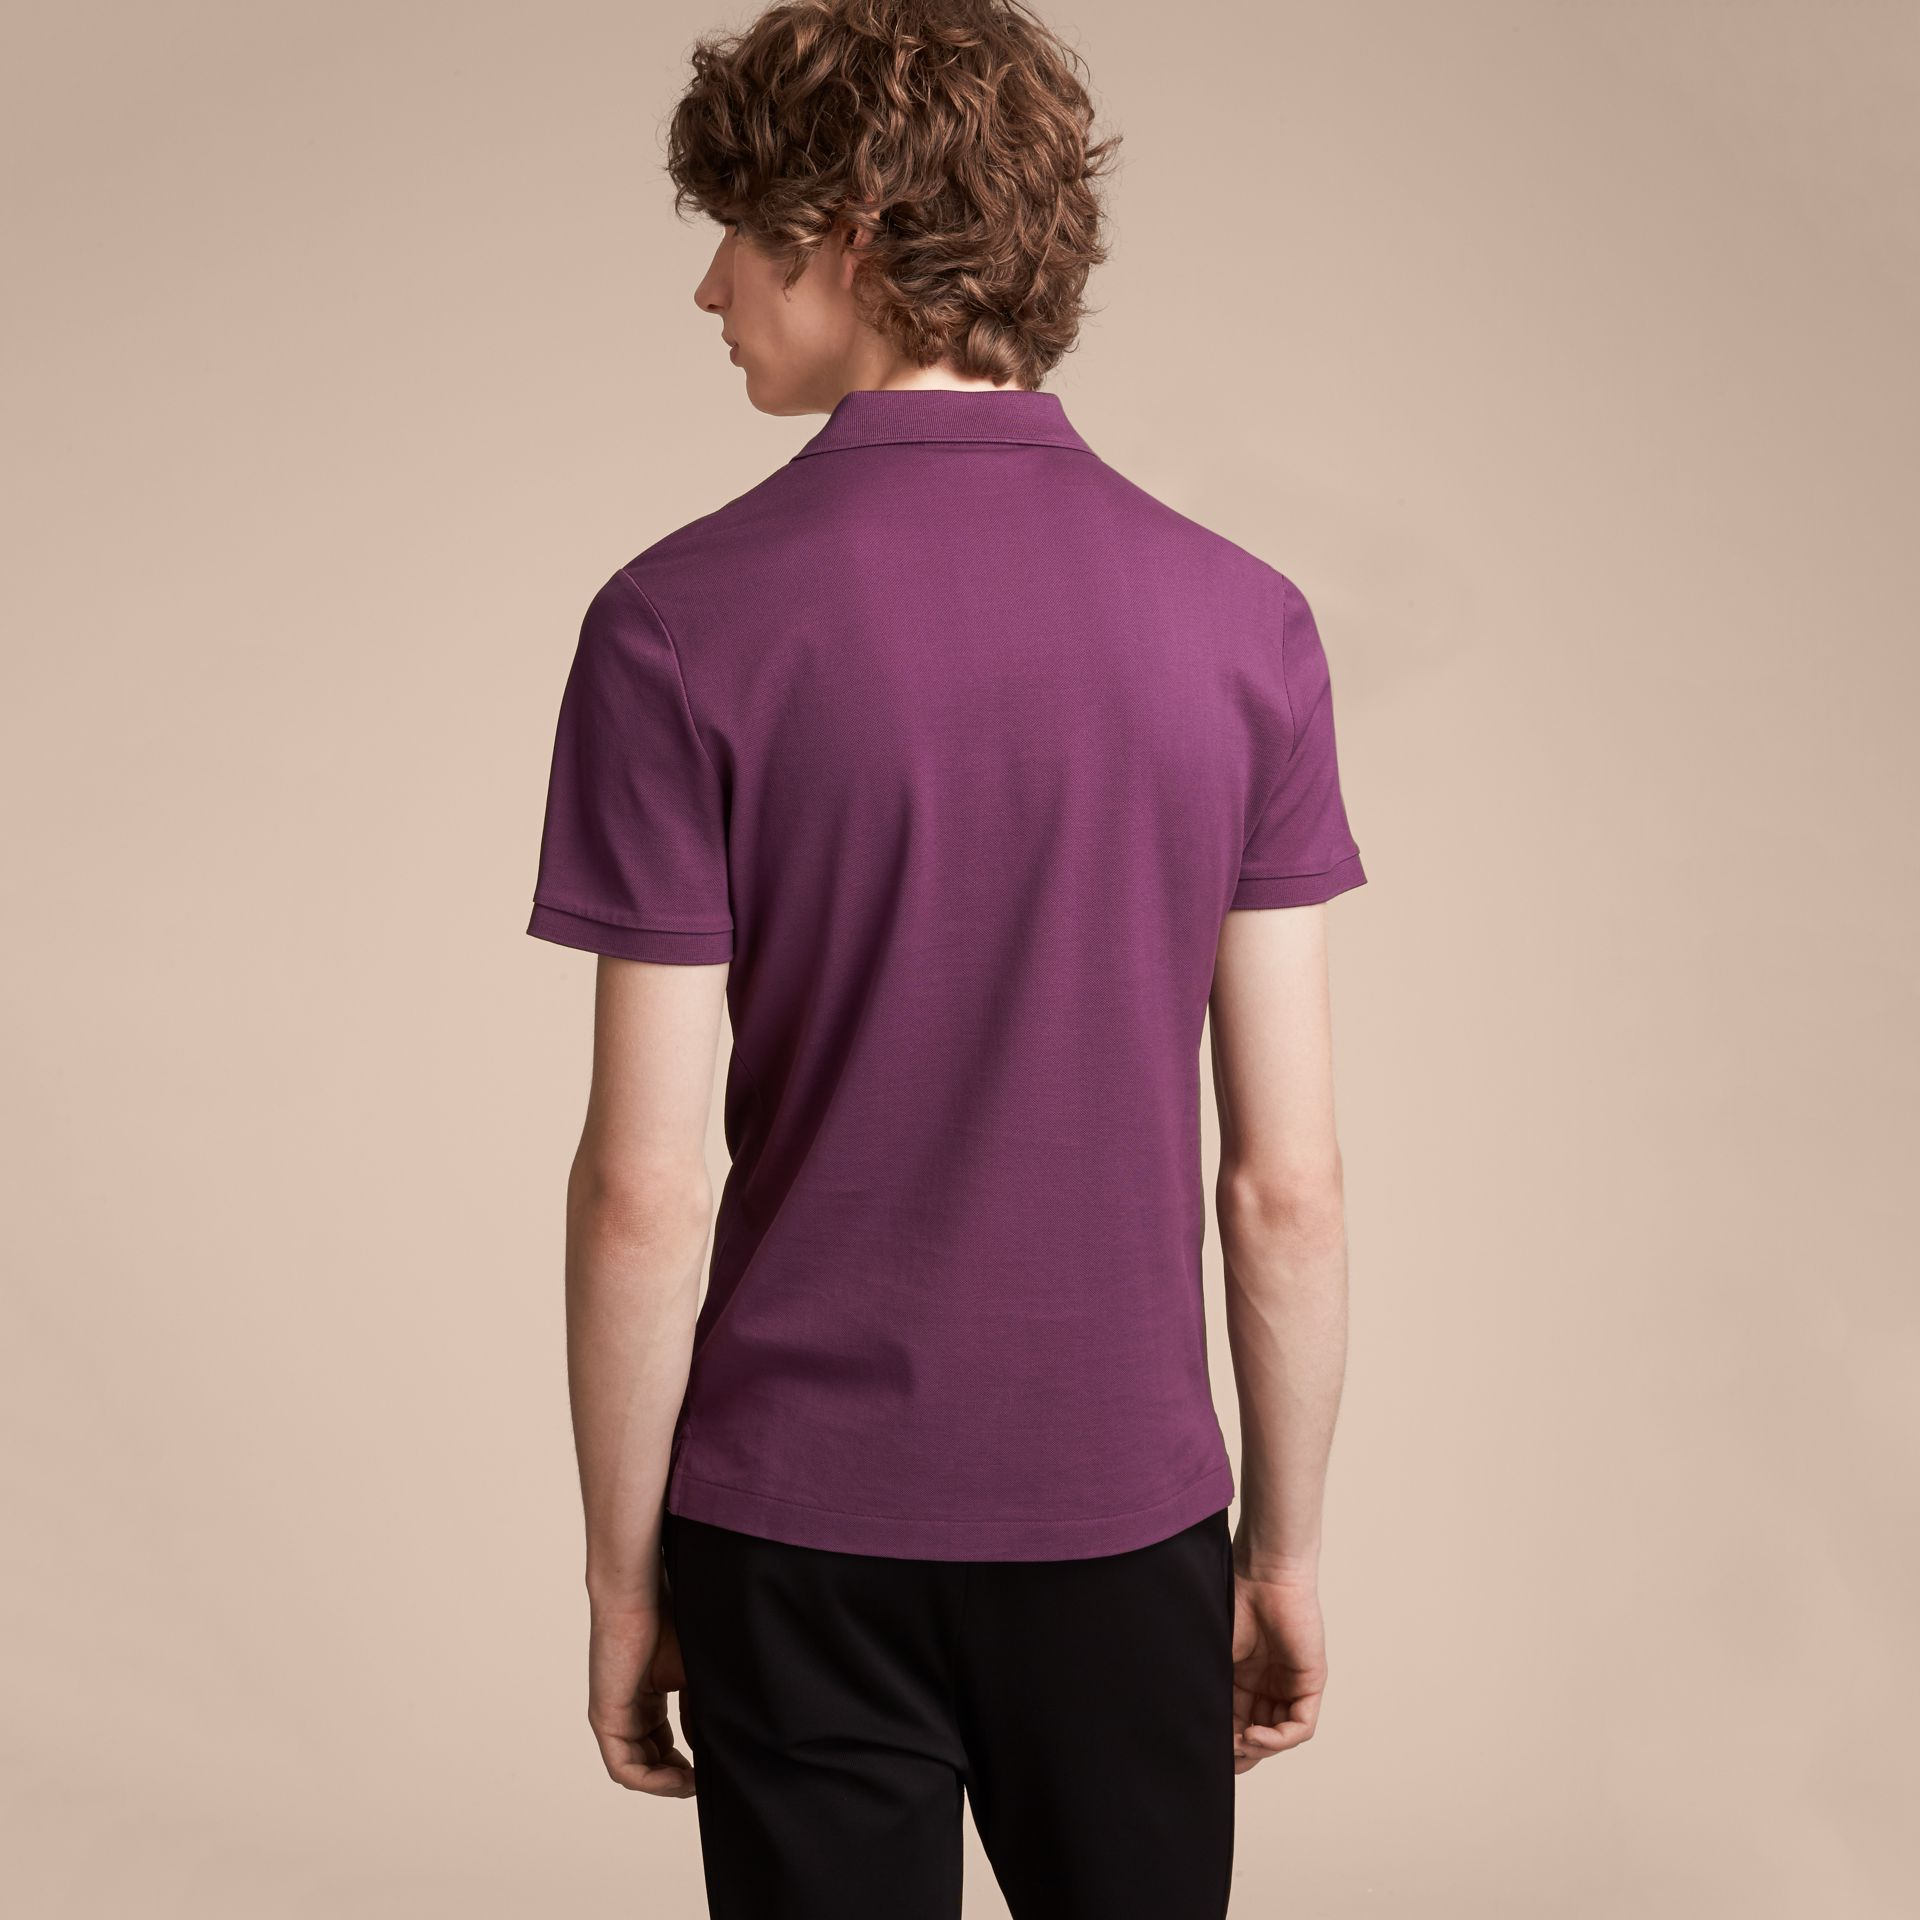 Cotton Piqué Polo Shirt in Heather - Men | Burberry Australia - gallery image 3